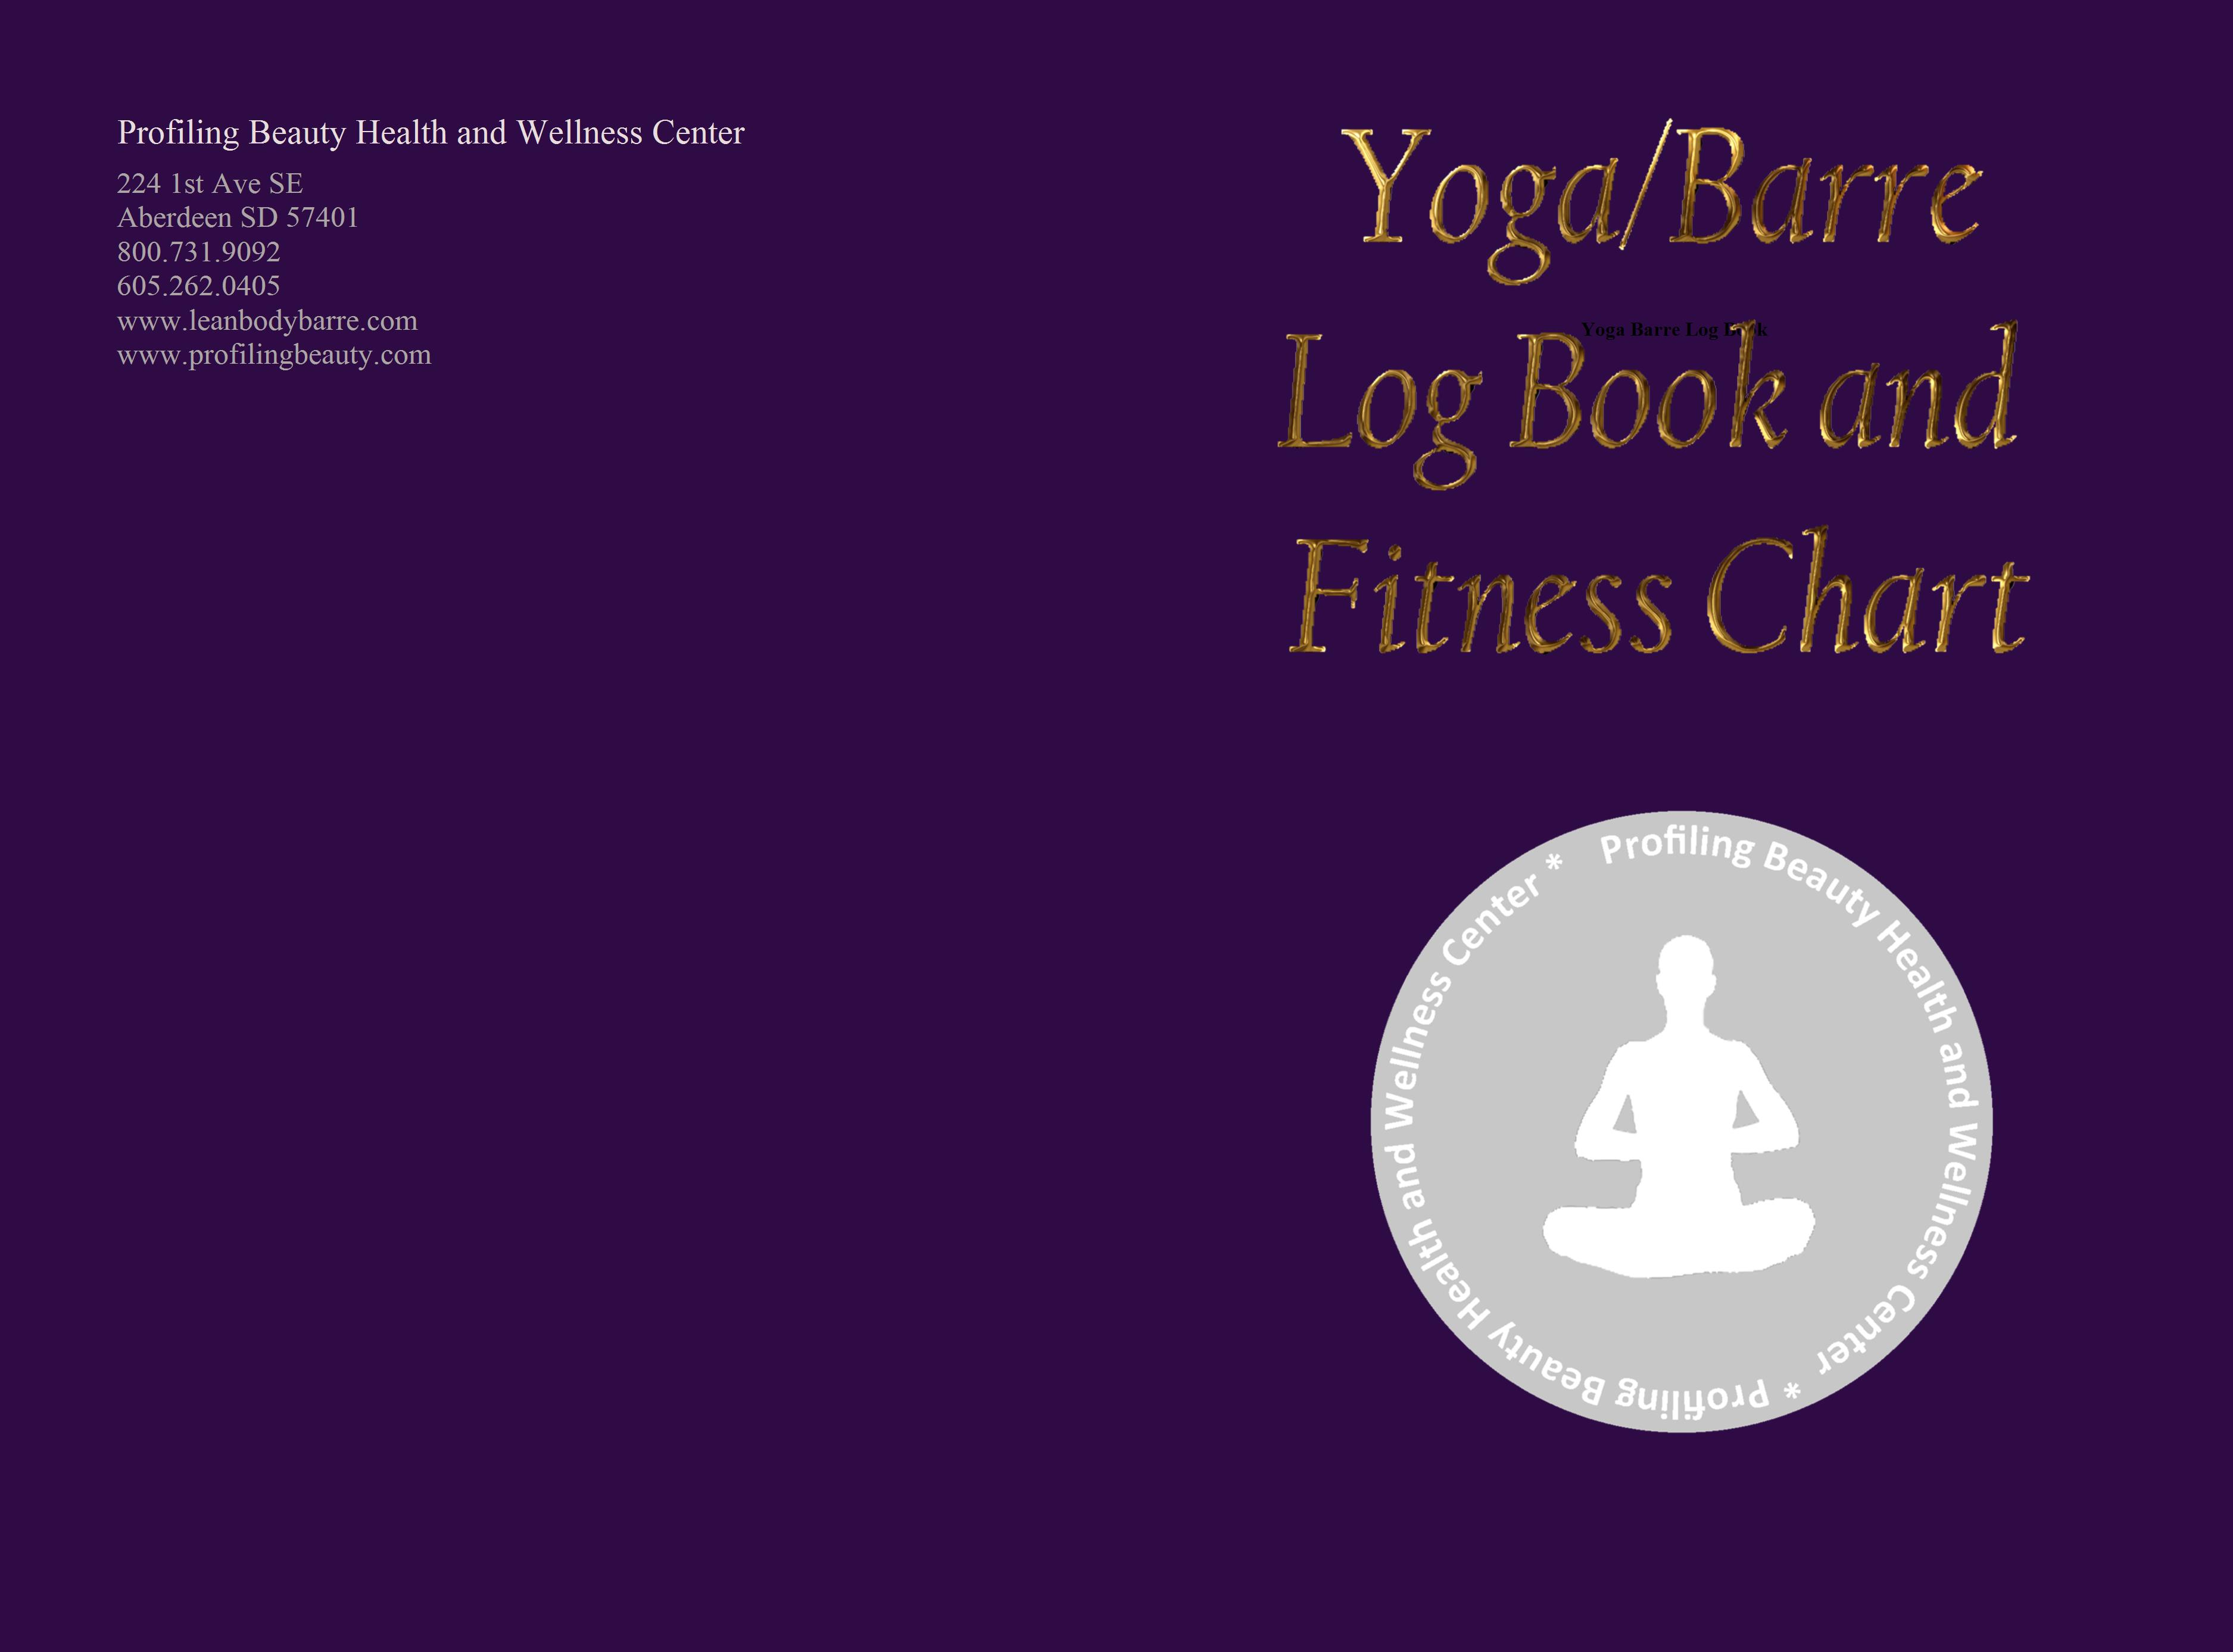 Yoga Barre Log Book cover image